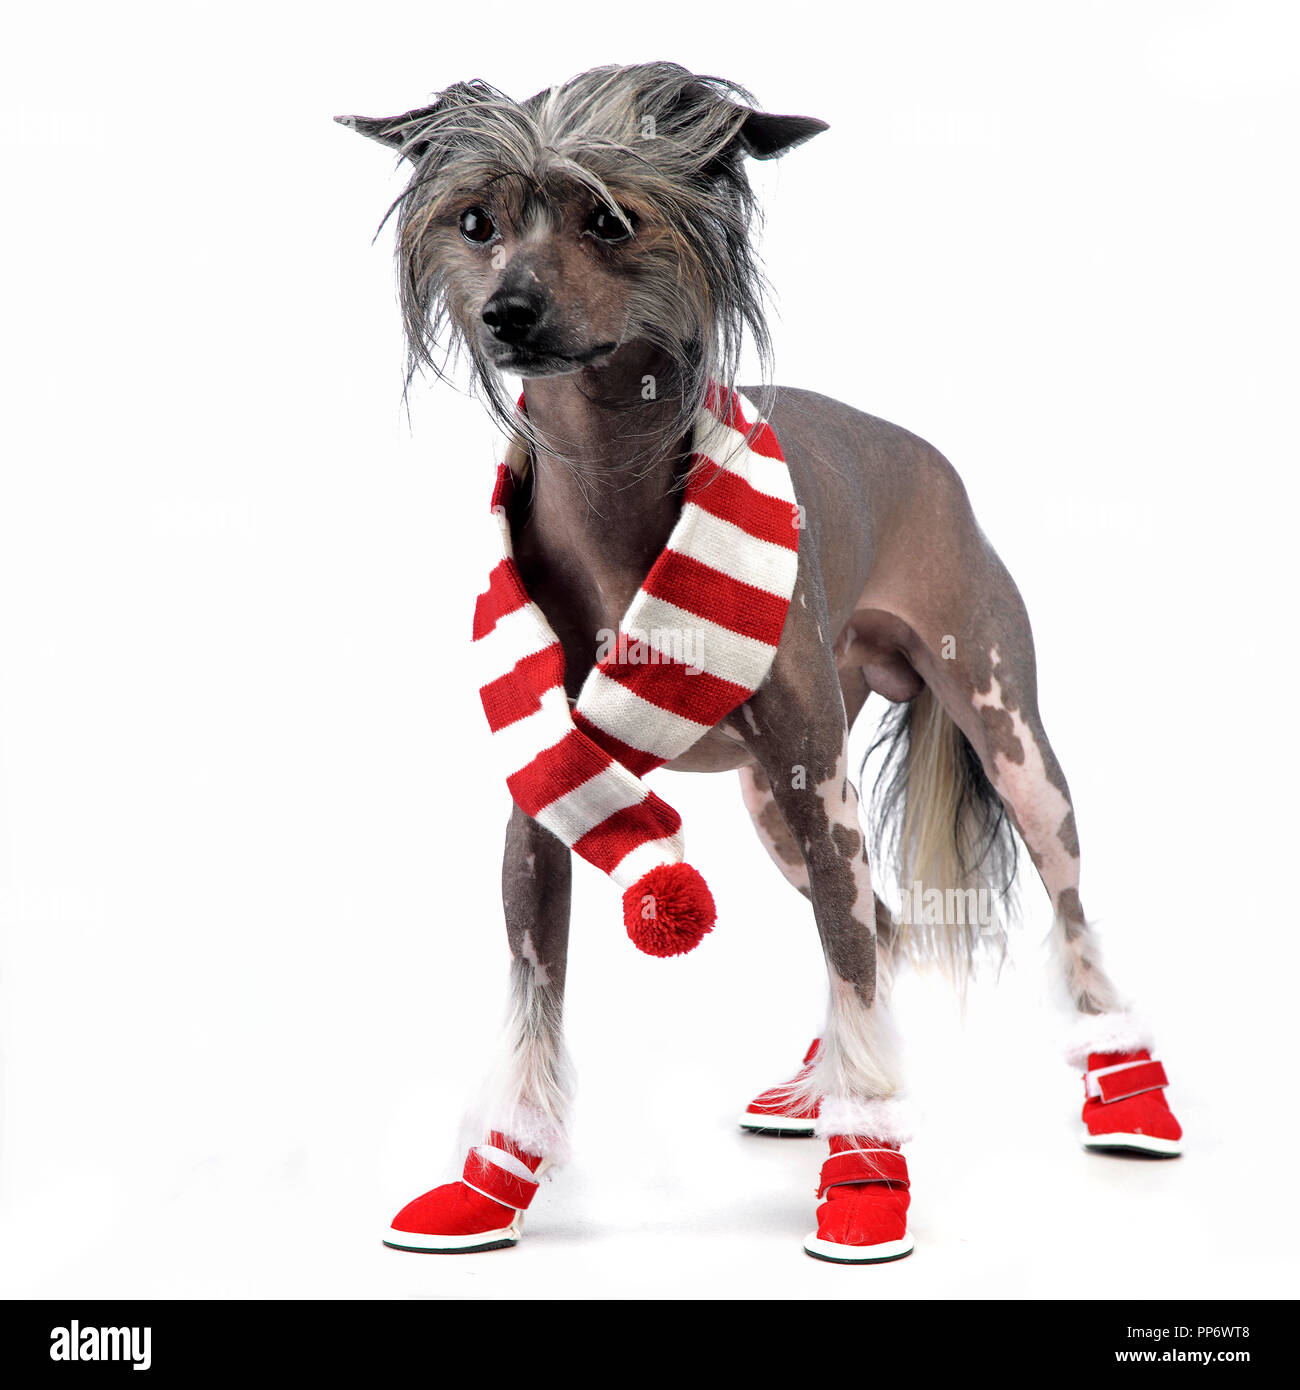 Chinese Crested Dog staying on the studio wearing shoes - Stock Image